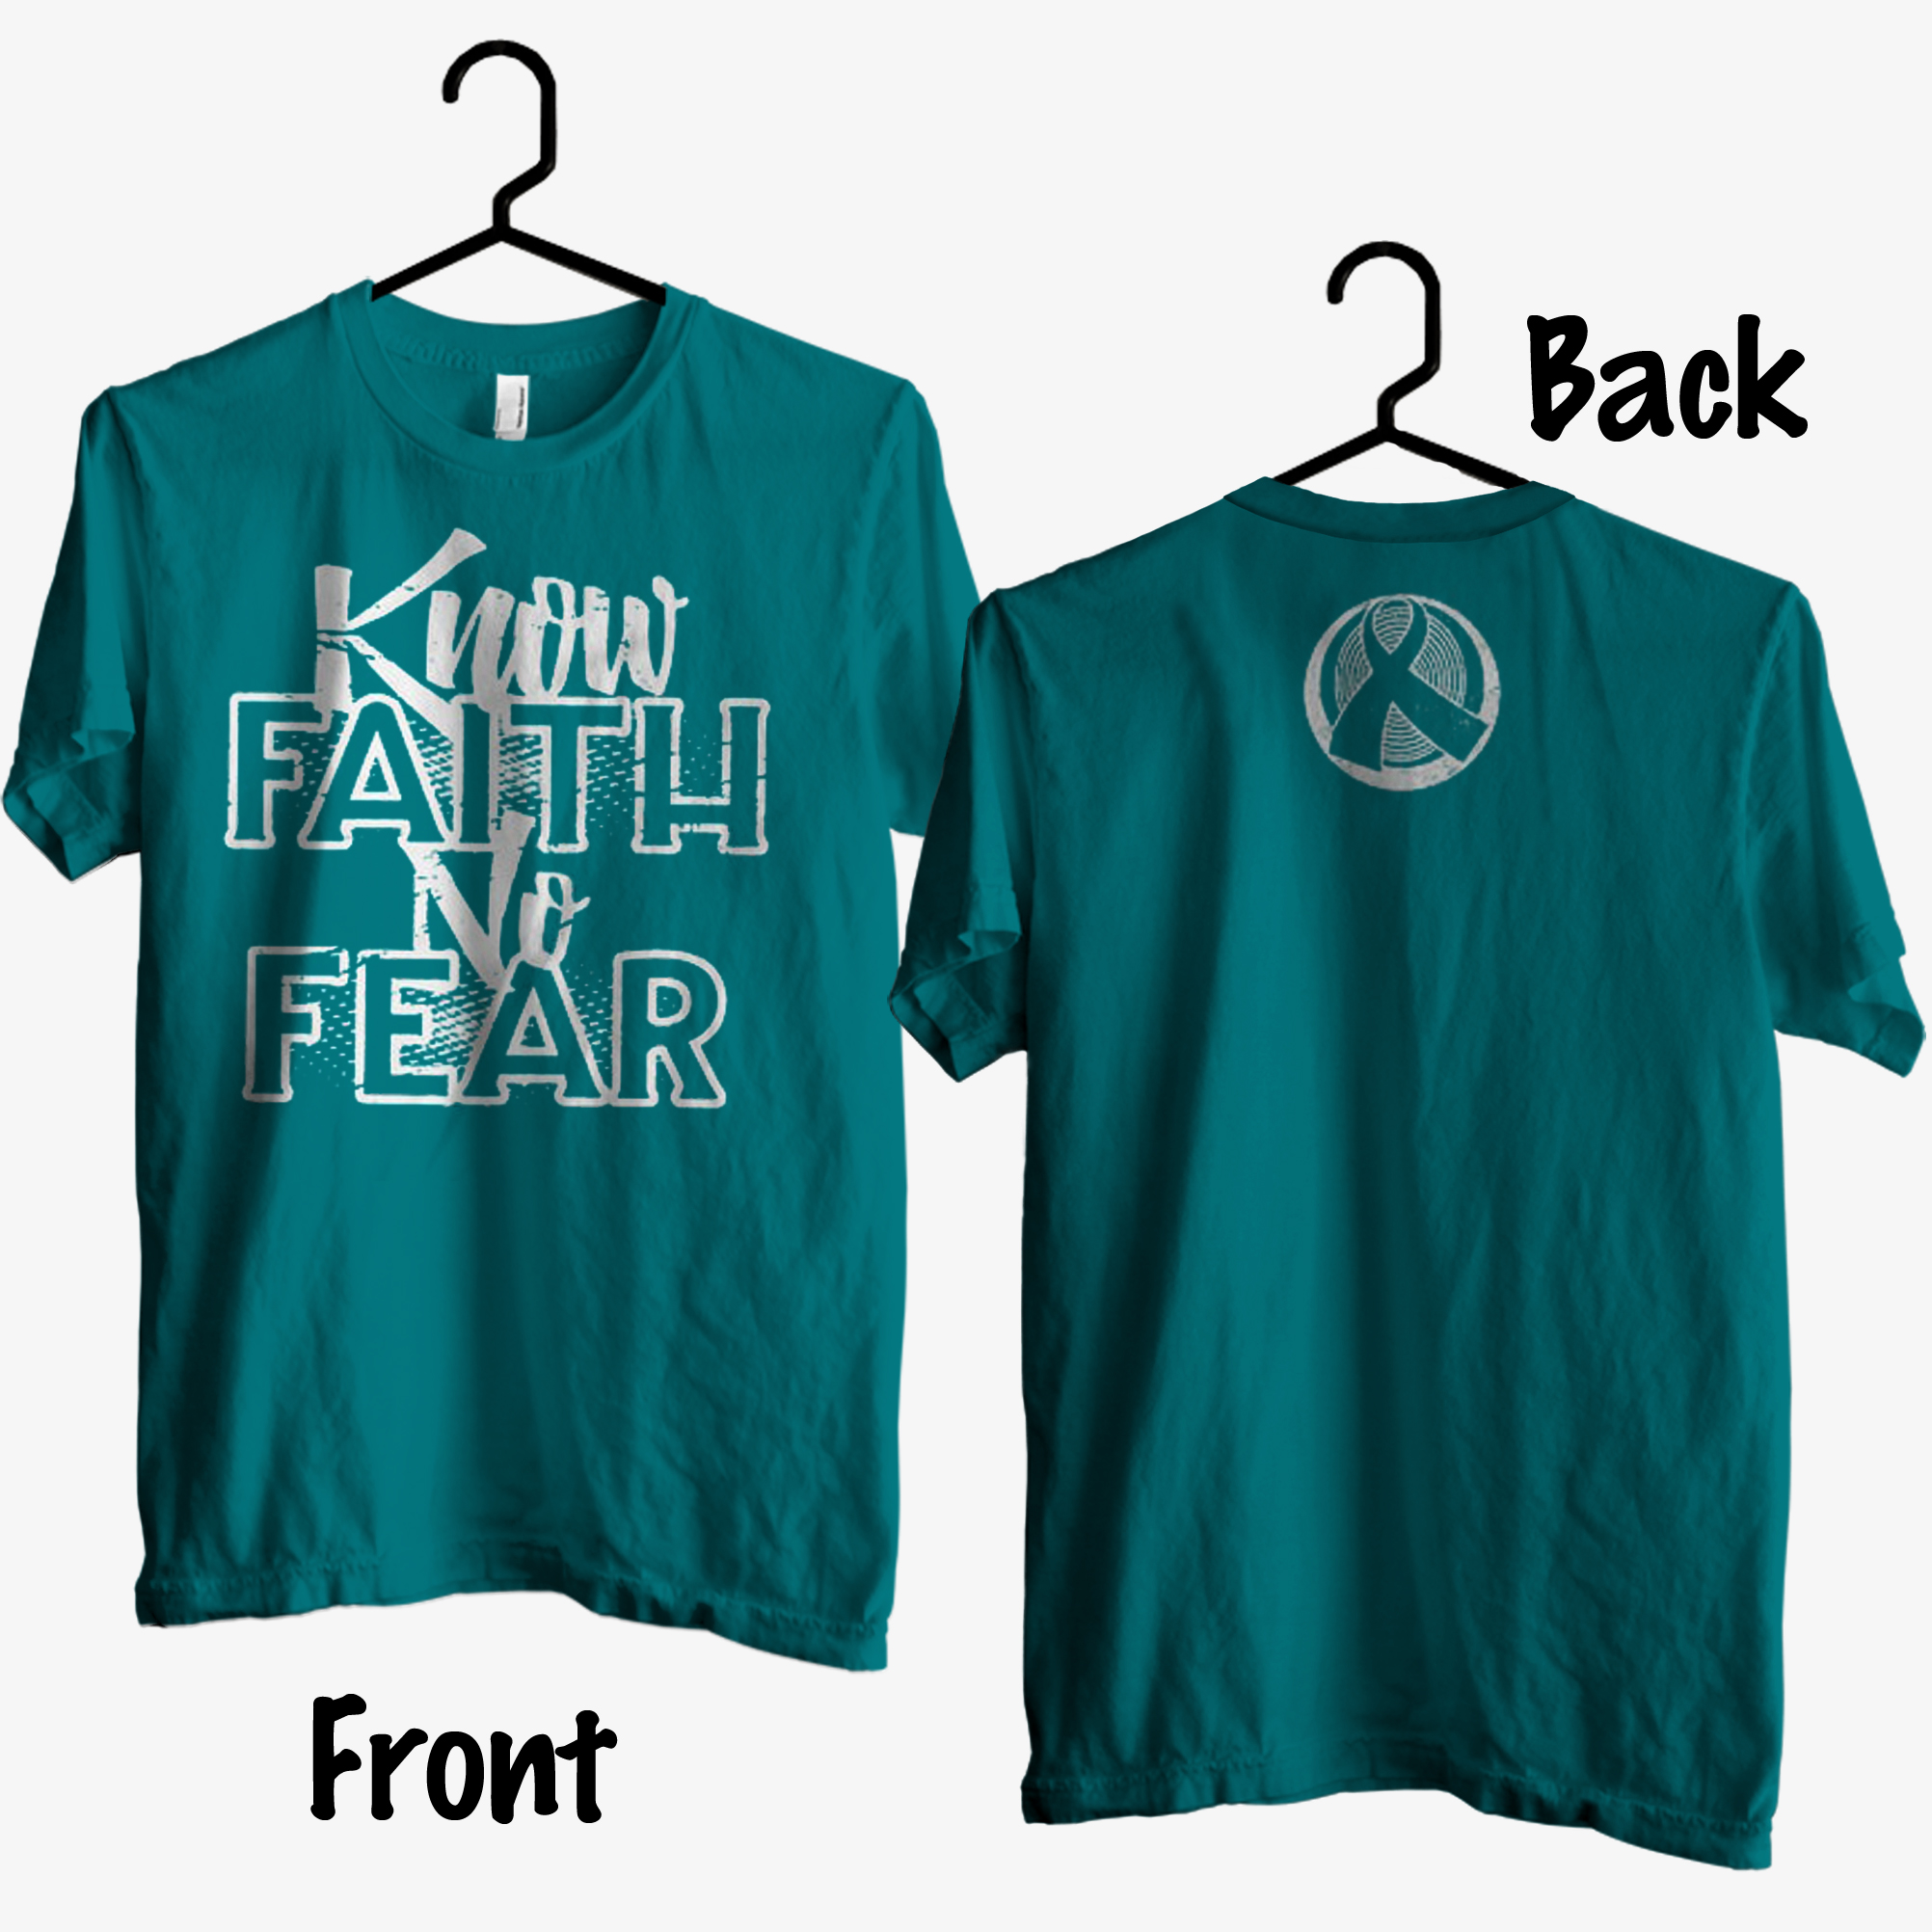 Know Faith No Fear T shirt Front Back